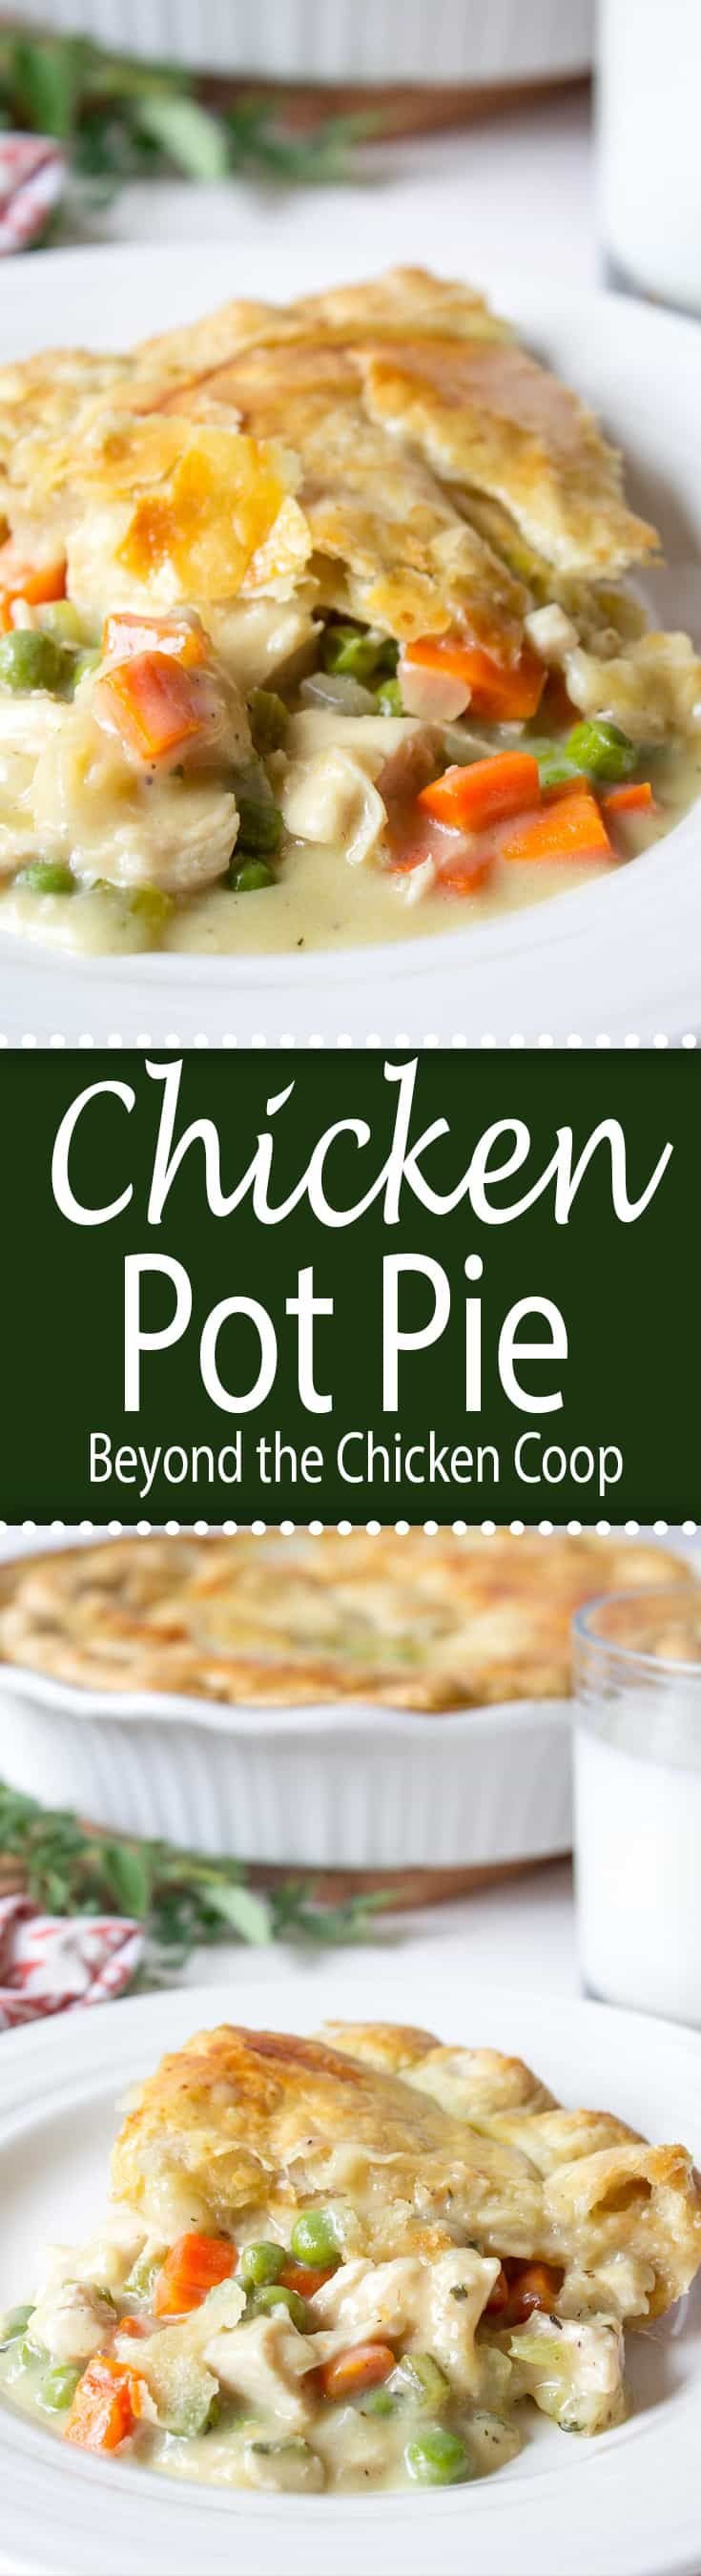 Homemade Chicken Pot Pie topped with a puff pastry crust. via @Beyondthecoop